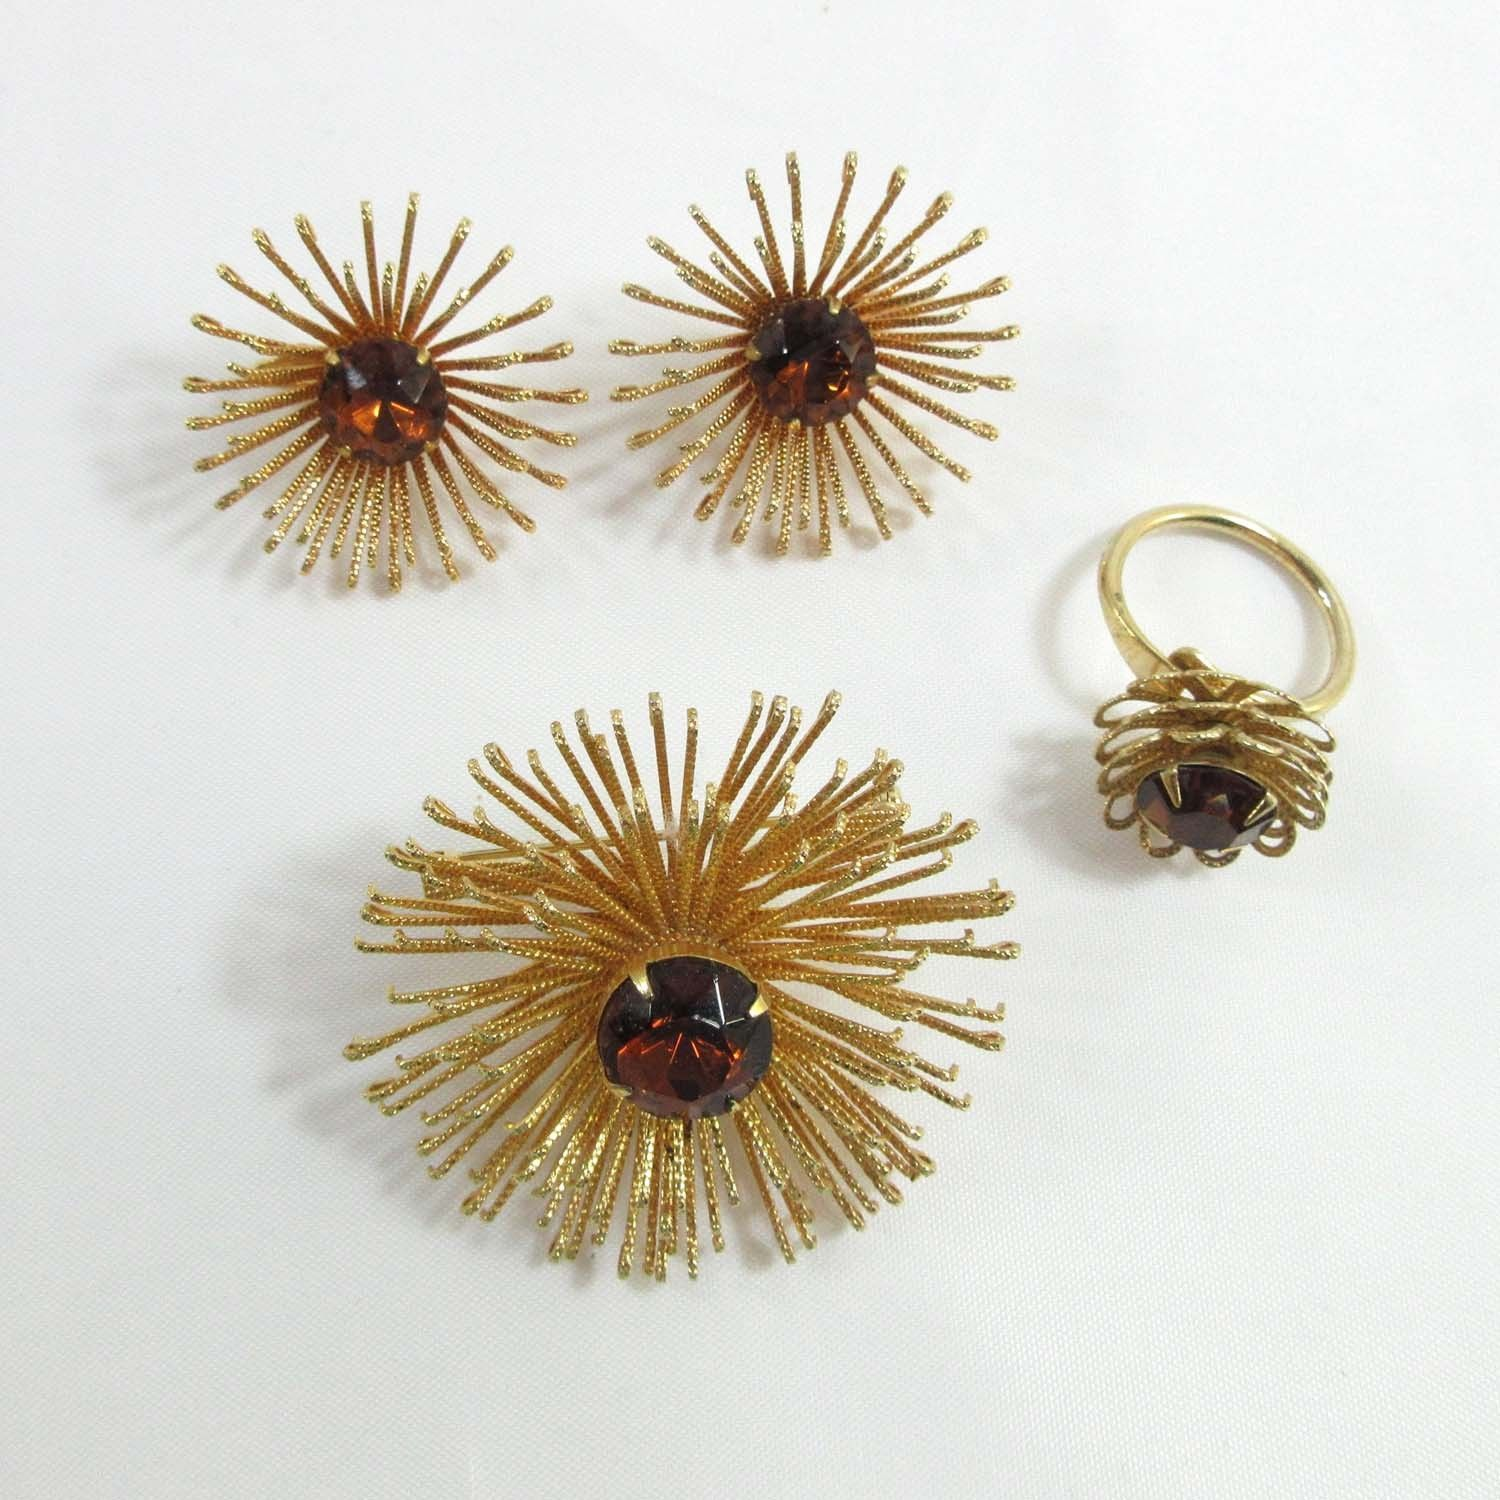 Brooch Ring Earrings Sarah Coventry Atomic Gold Rhinestones Set Flower 9265